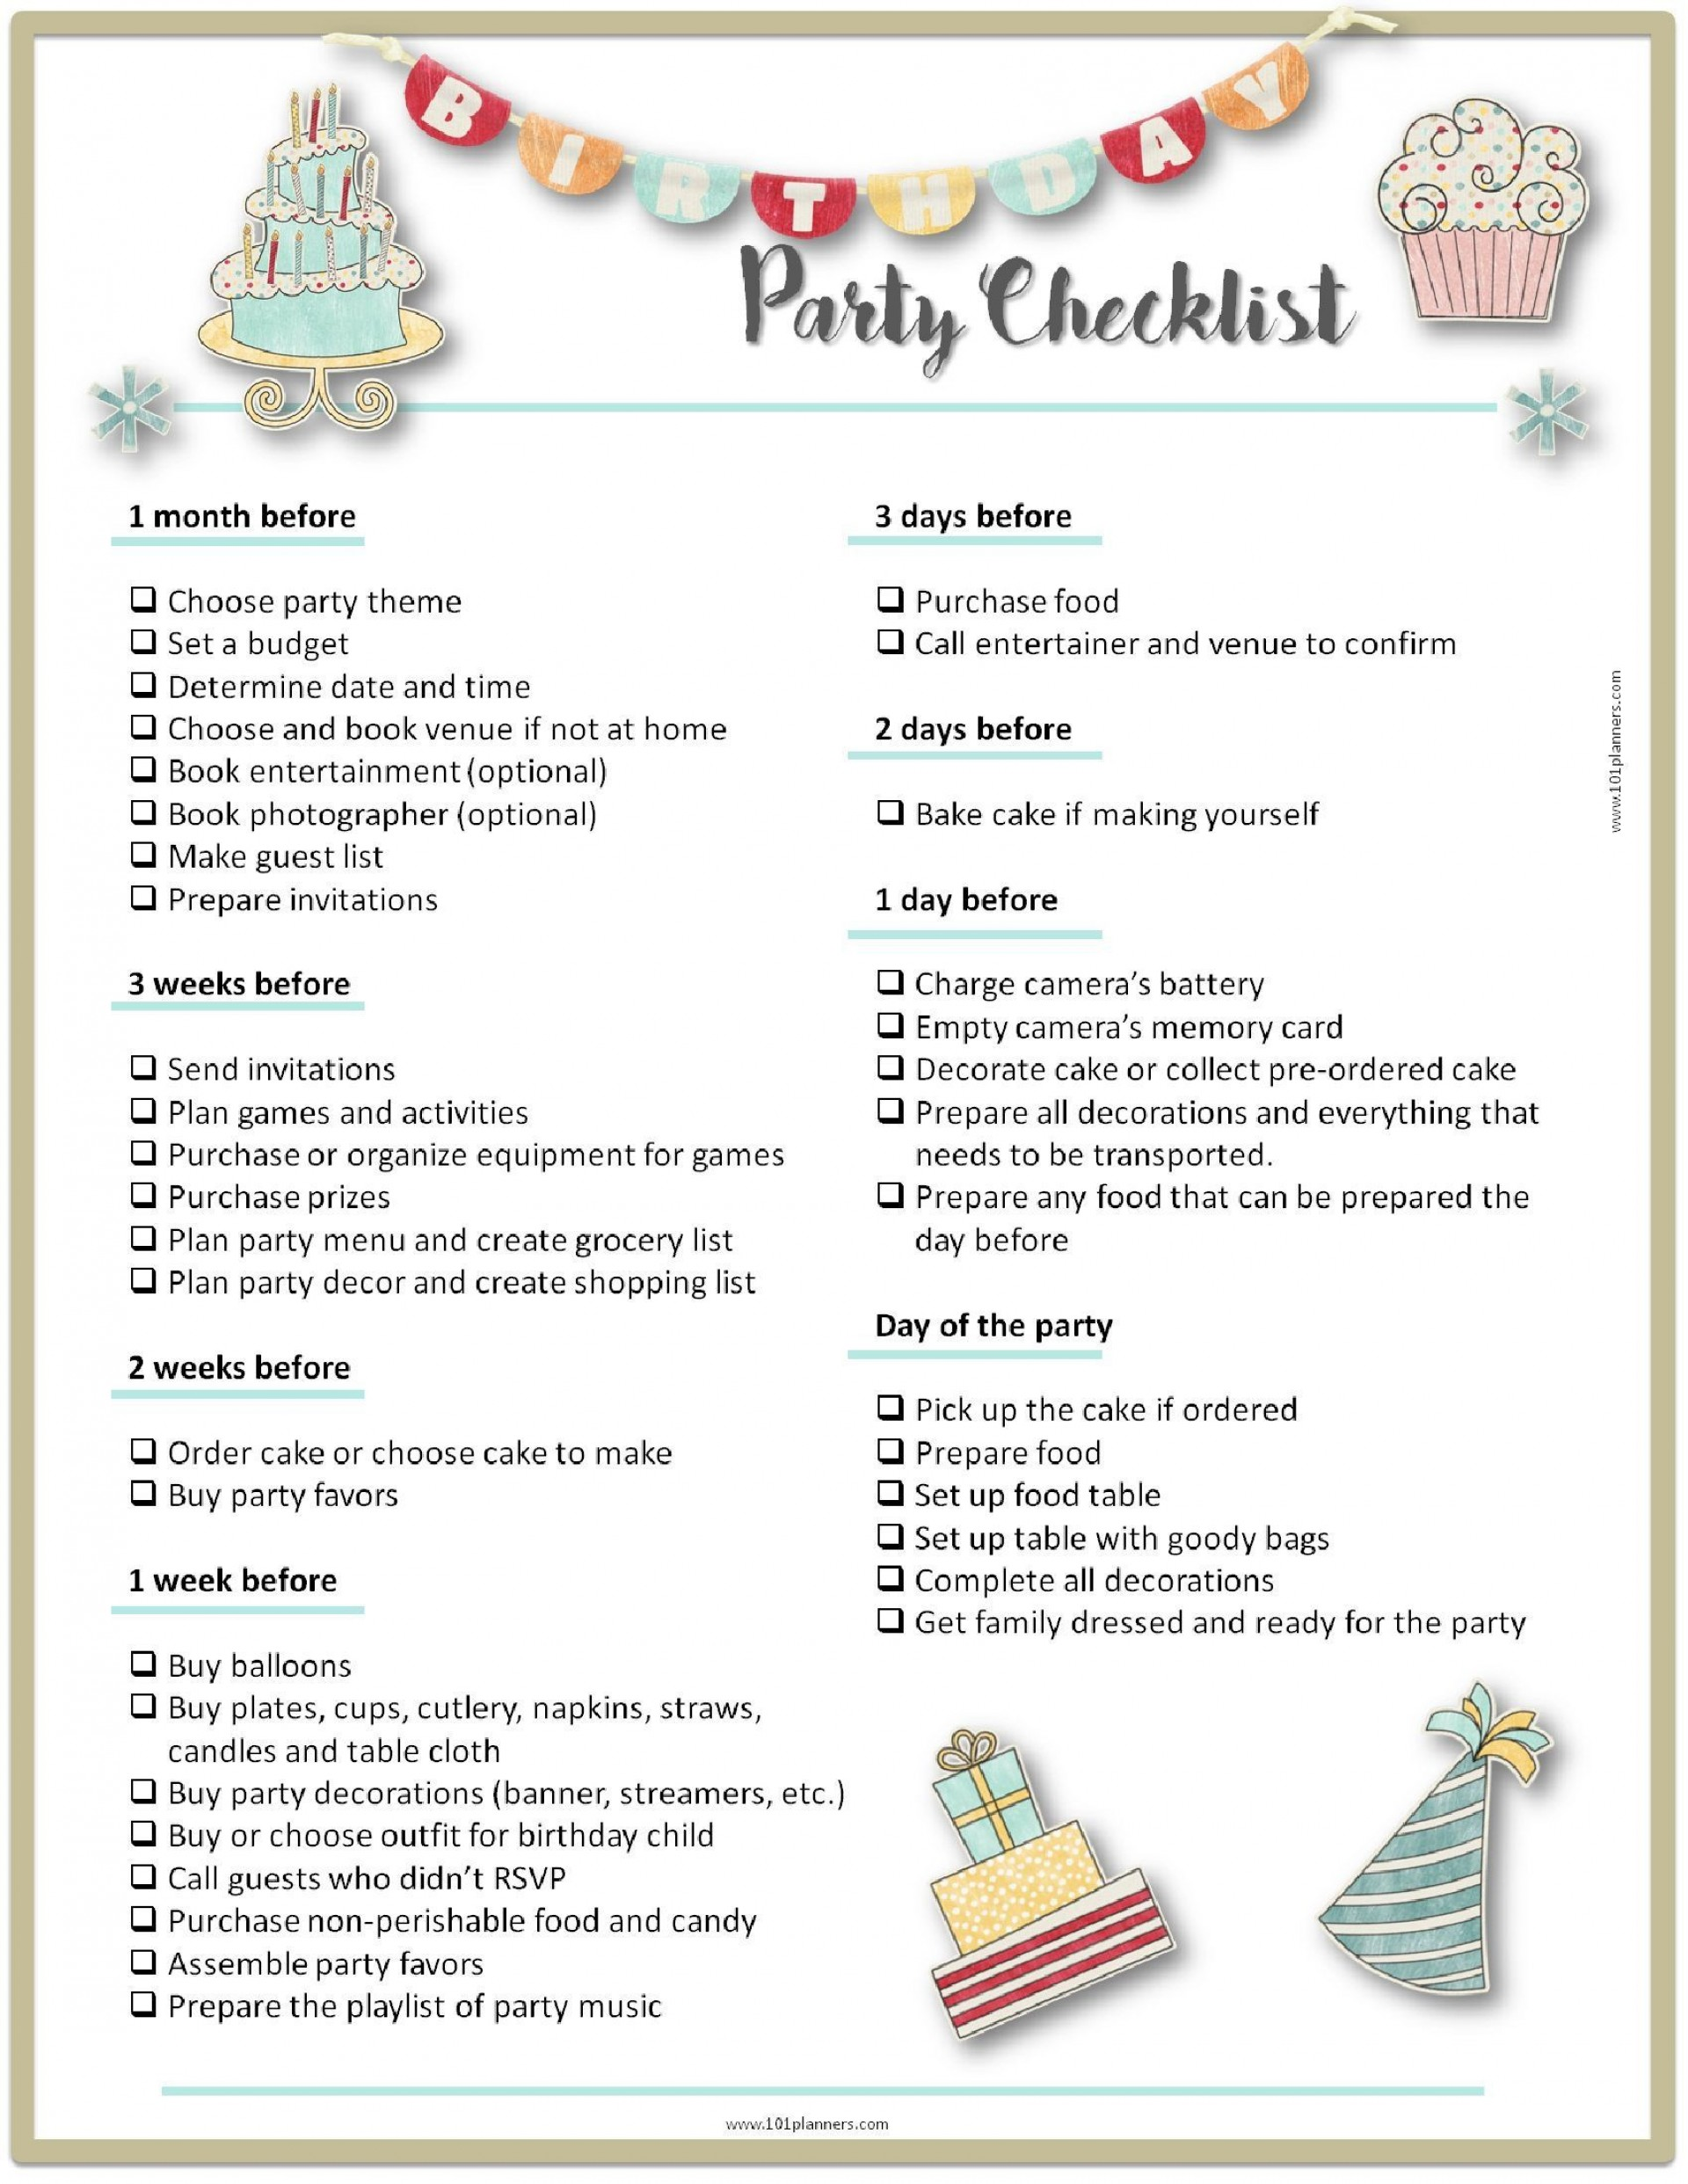 000 Exceptional Party Plan Checklist Template Example  Planning Free Graduation Birthday1920